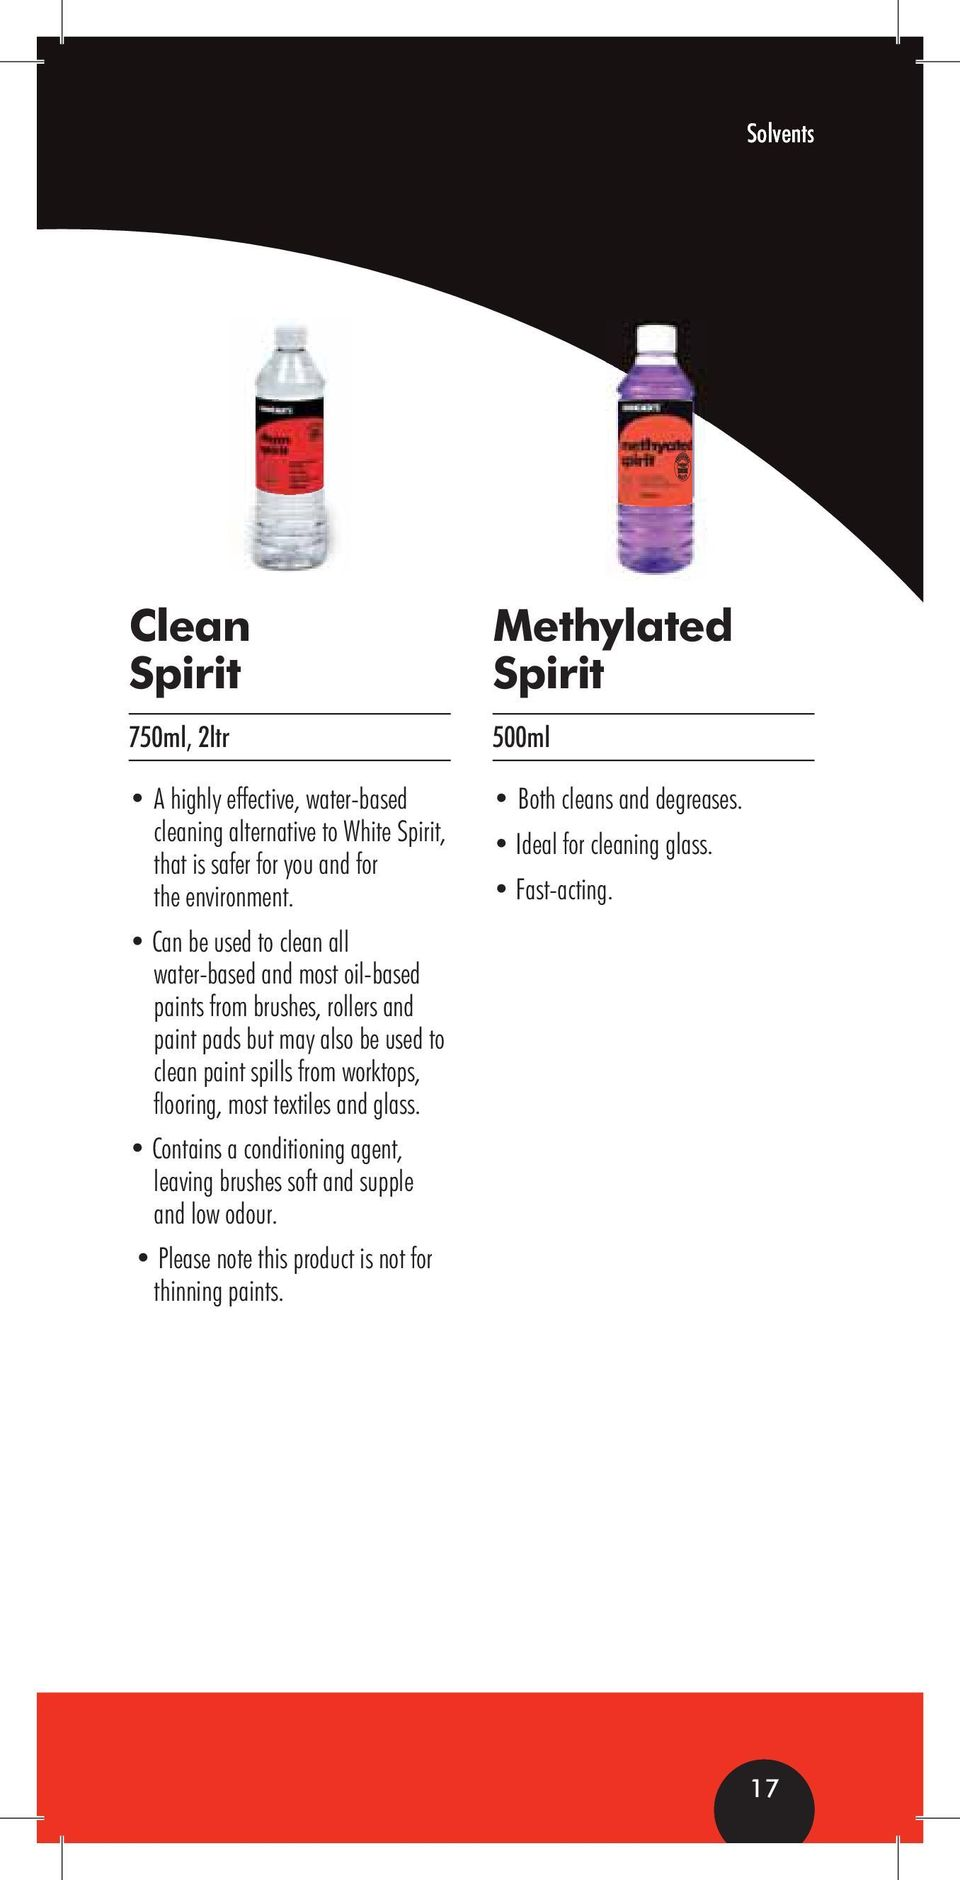 clean paint spills from worktops, flooring, most textiles and glass.